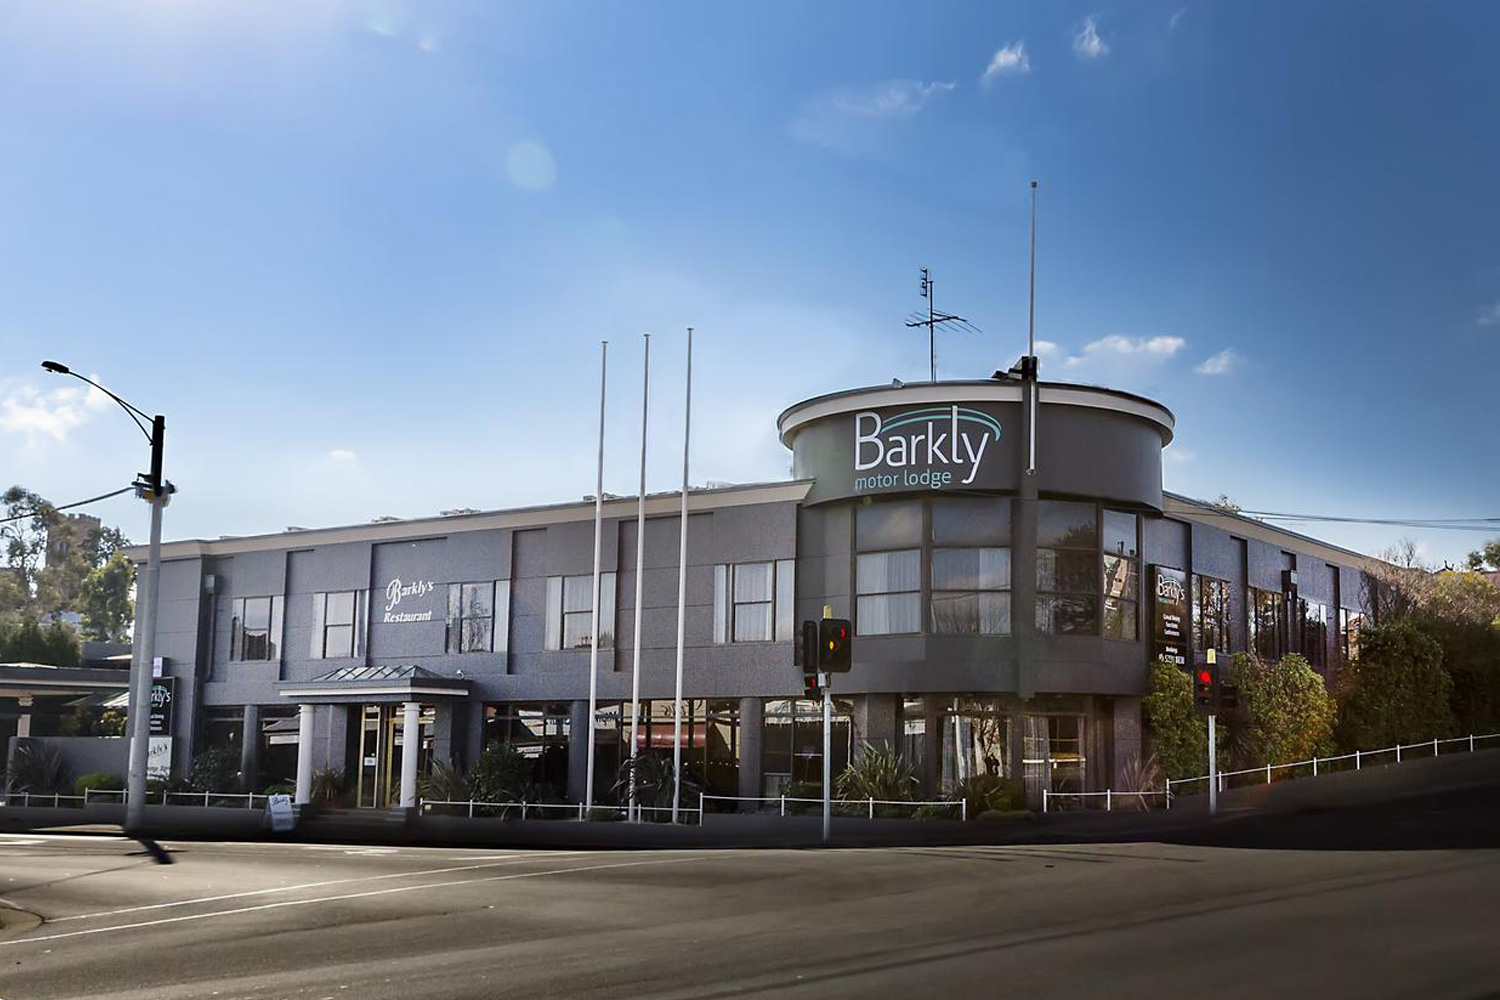 barkly-motorlodge-family-accommodation-ballarat